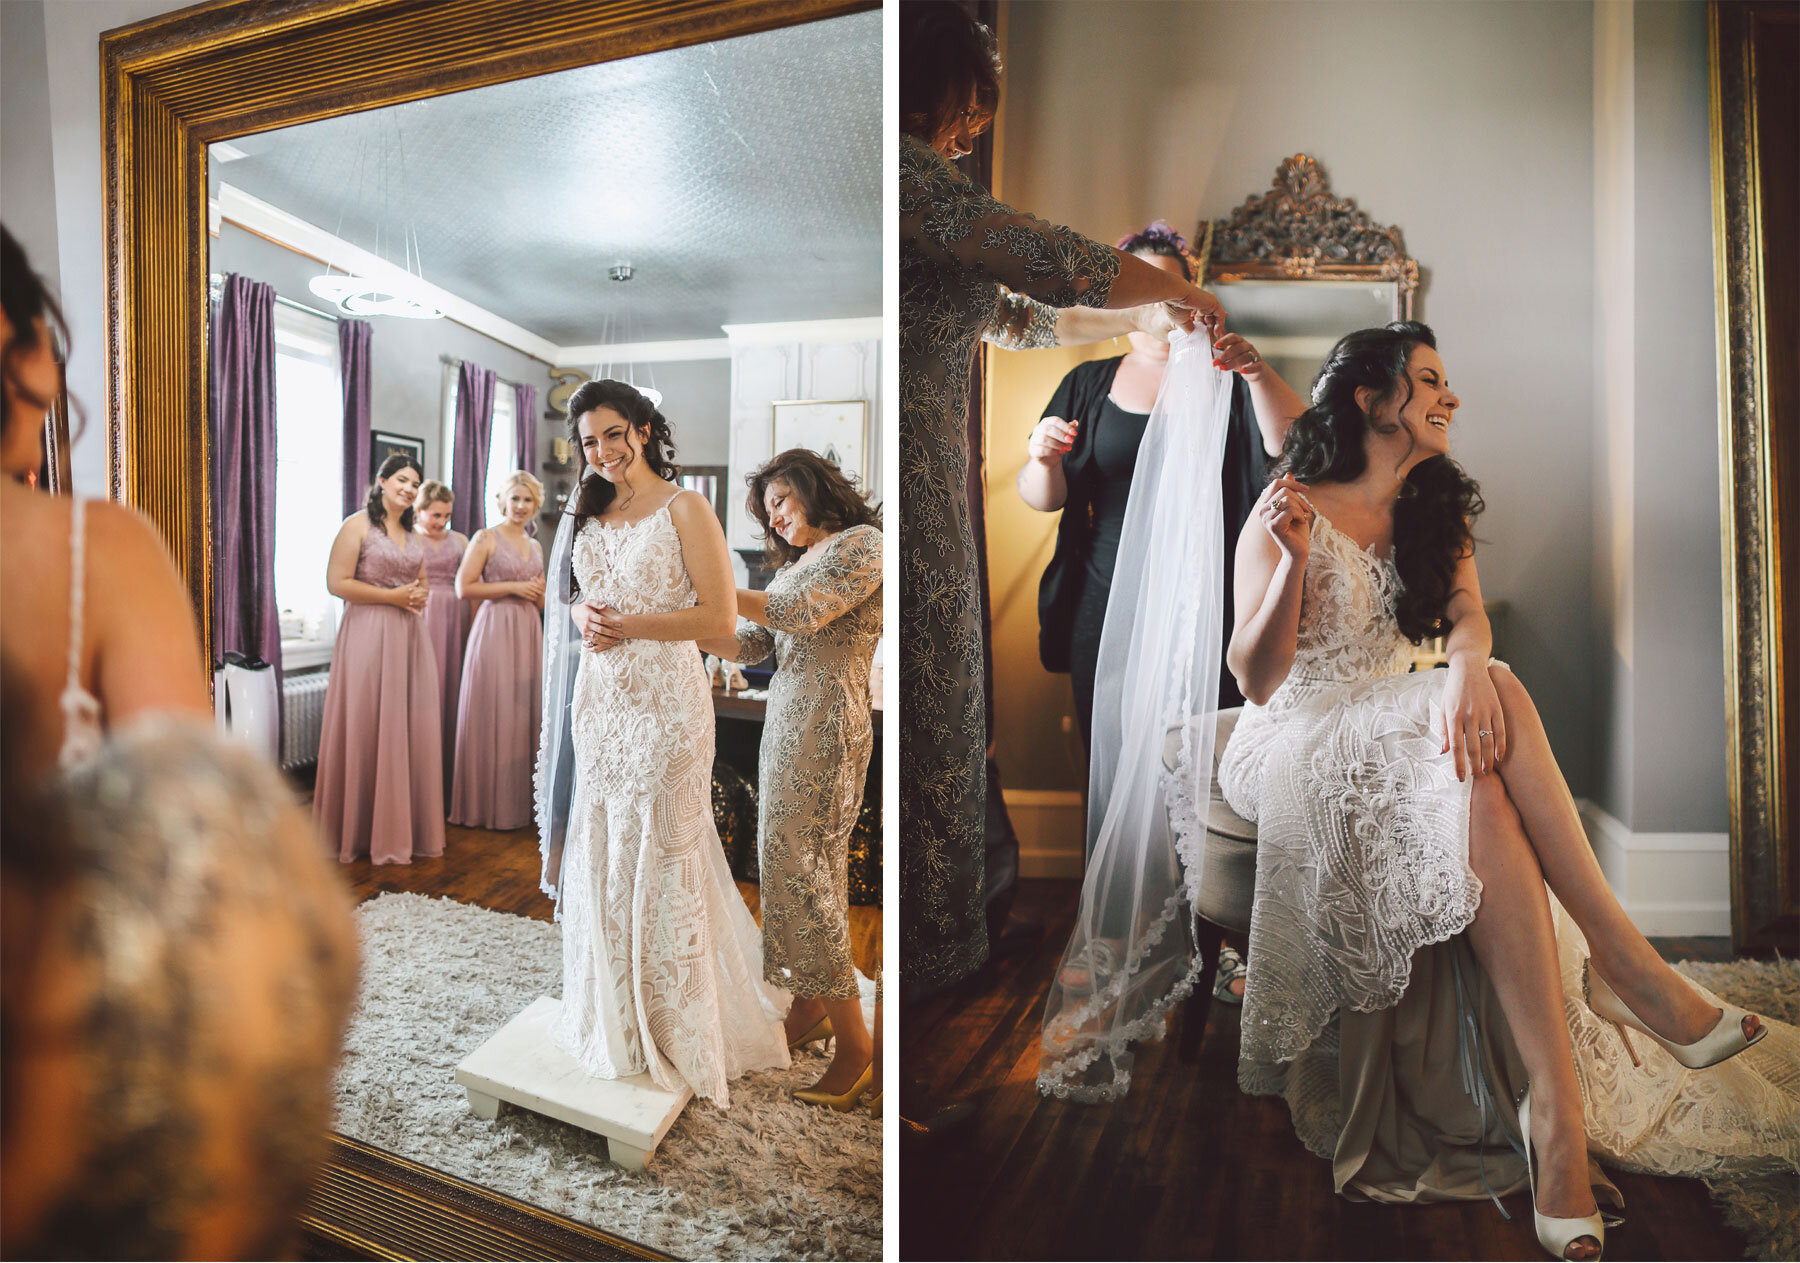 01-Wedding-by-Vick-Photography-Minneapolis-Minnesota-Semple-Mansion-Historic-Venue-Bride-Mother-Dress-Kaitlyn-and-Nate.jpg